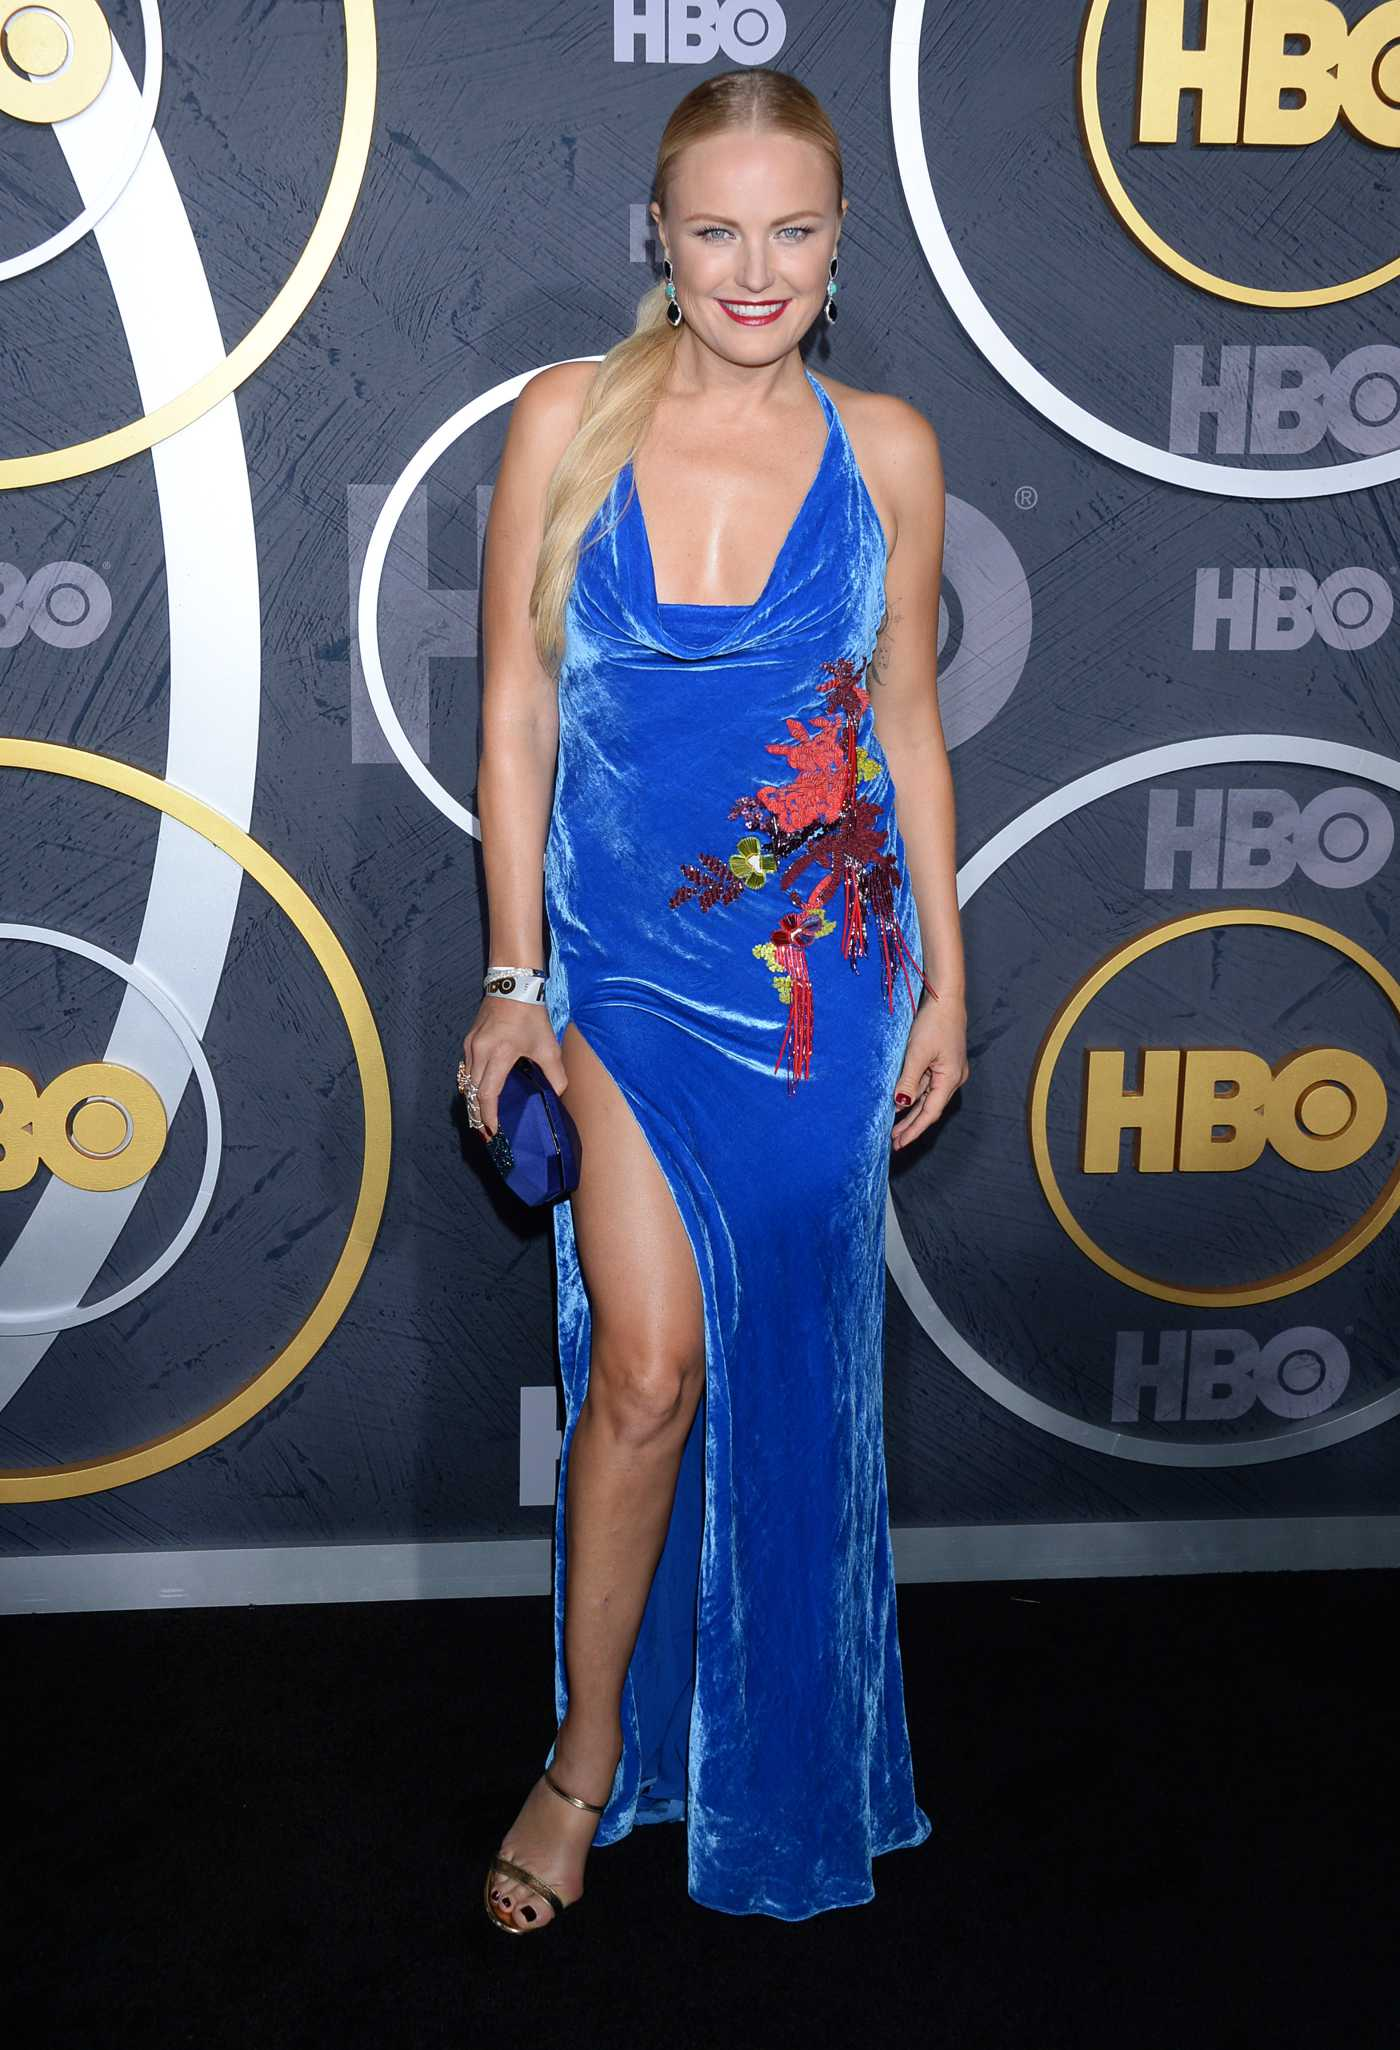 Malin Akerman Attends HBO's Official 2019 Emmy After Party in LA 09/22/2019